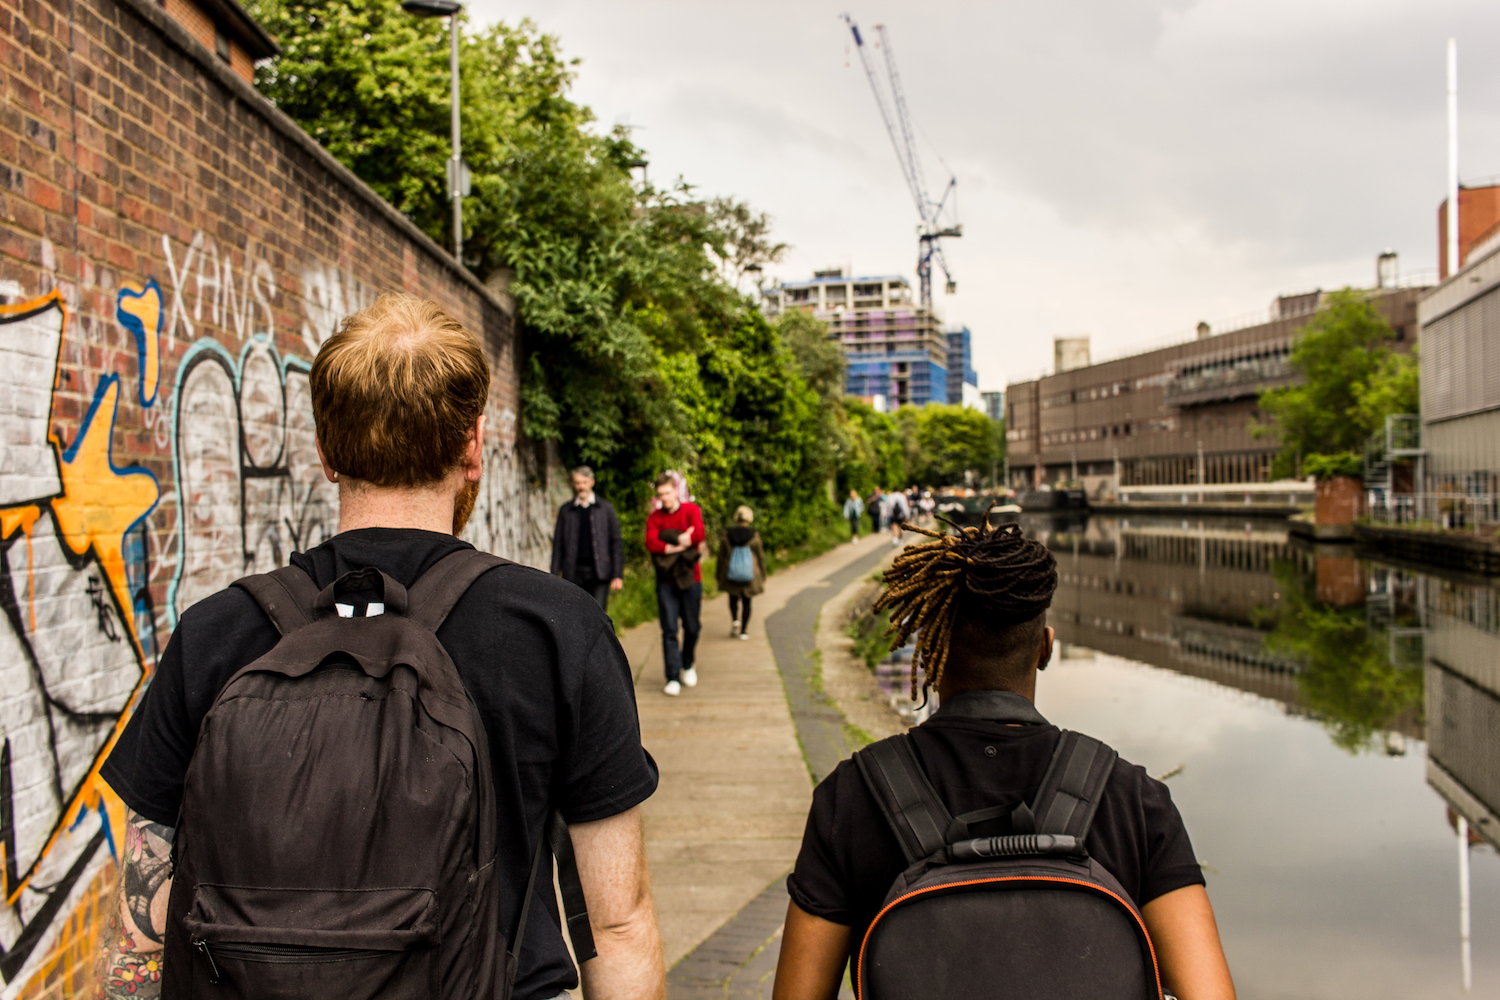 Professional Photography White Man With Beard Black T-Shirt And Black Backpack Walking With Dreadlocks Black Woman Carrying Black Backpack Walking Alongside River Canal In Camden With Graffiti Crane And Buildings In Background